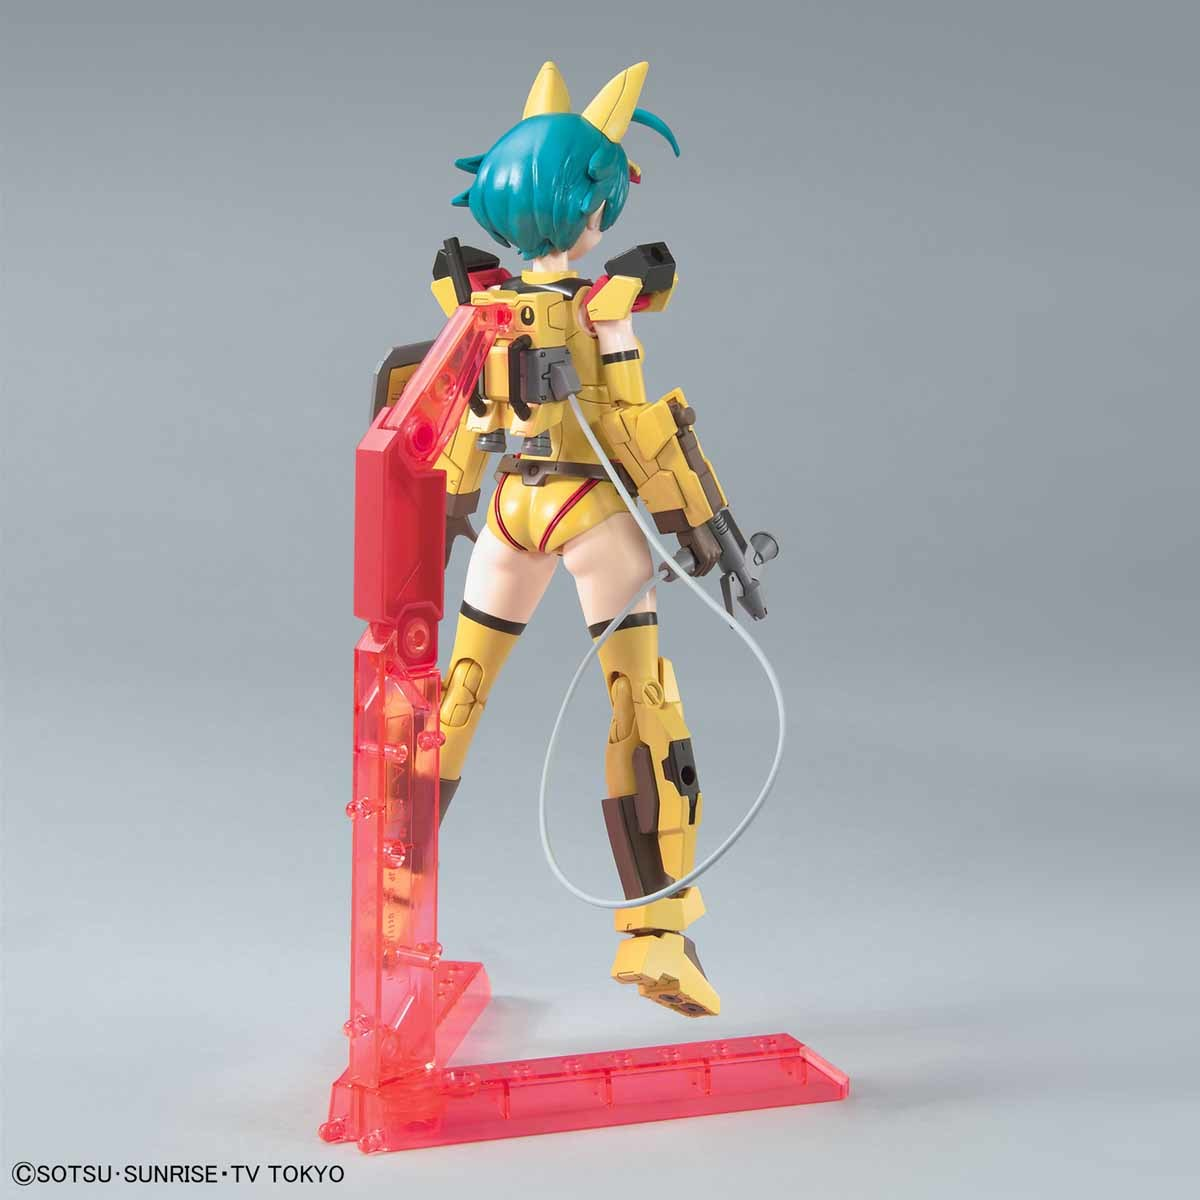 Figure-rise Standard Diver Nami - Release Info, Box art and Official Images - Gundam Kits Collection News and Reviews